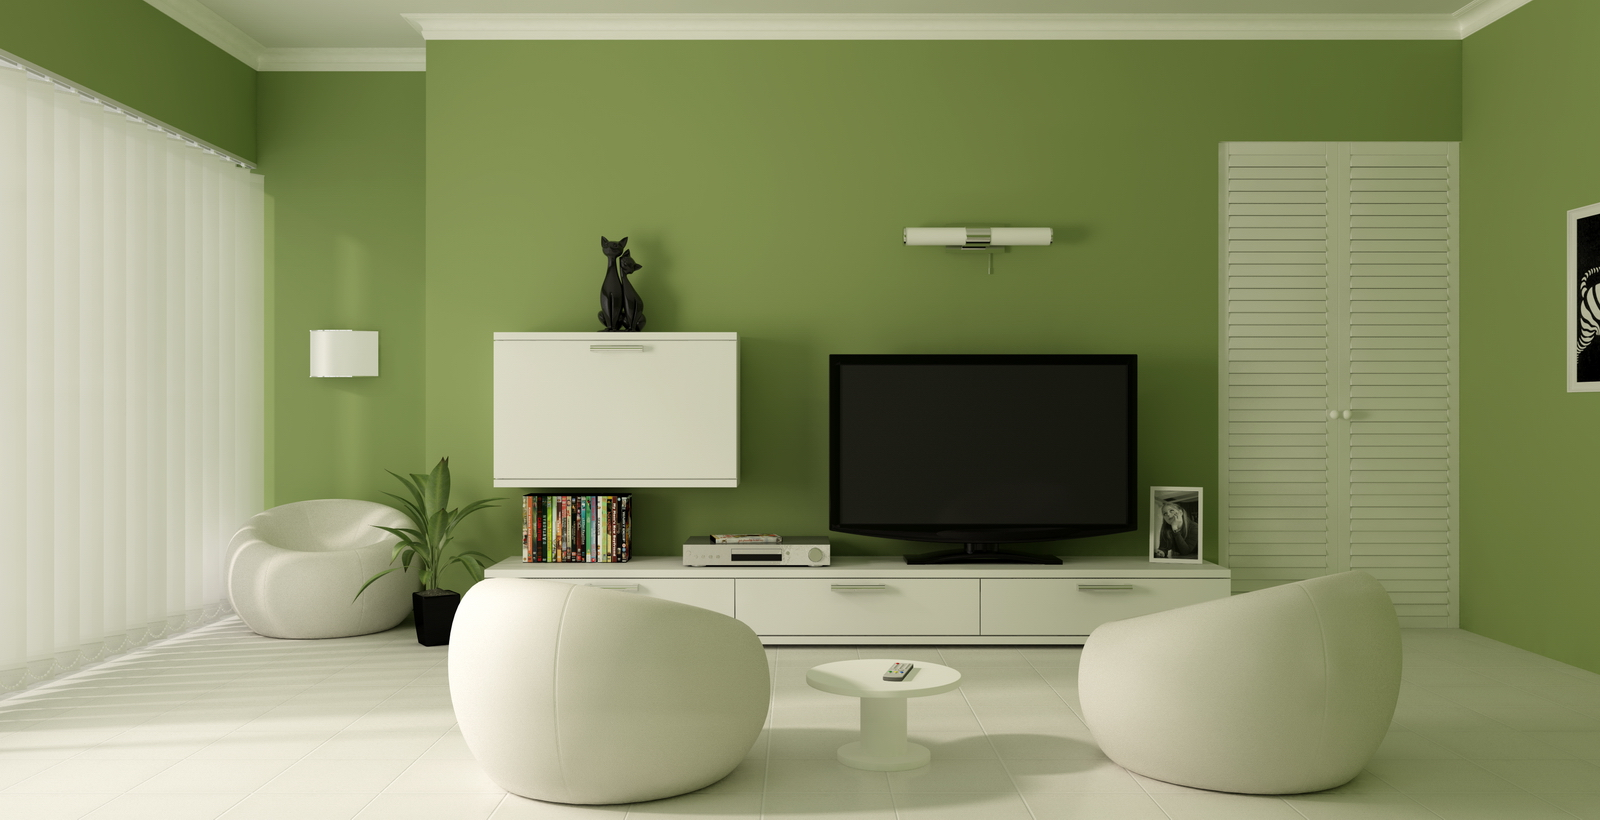 Living Room Wall Pleasing Of Green Color Paint Living Room Ideas Photo